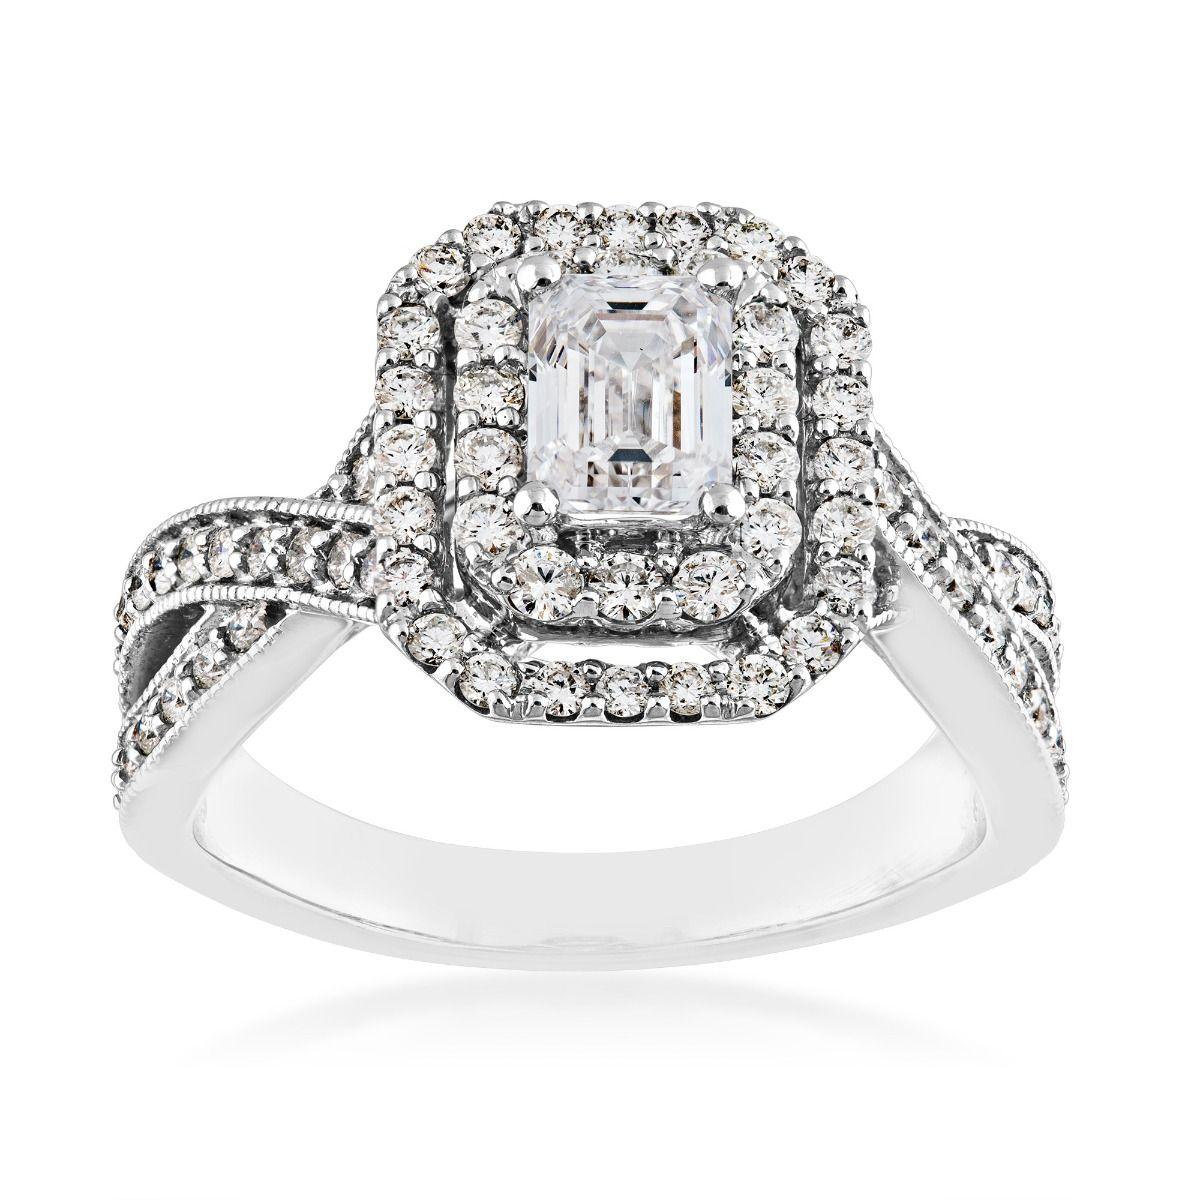 Amaura Collection 1 3/4 Ct. Tw (View 11 of 25)